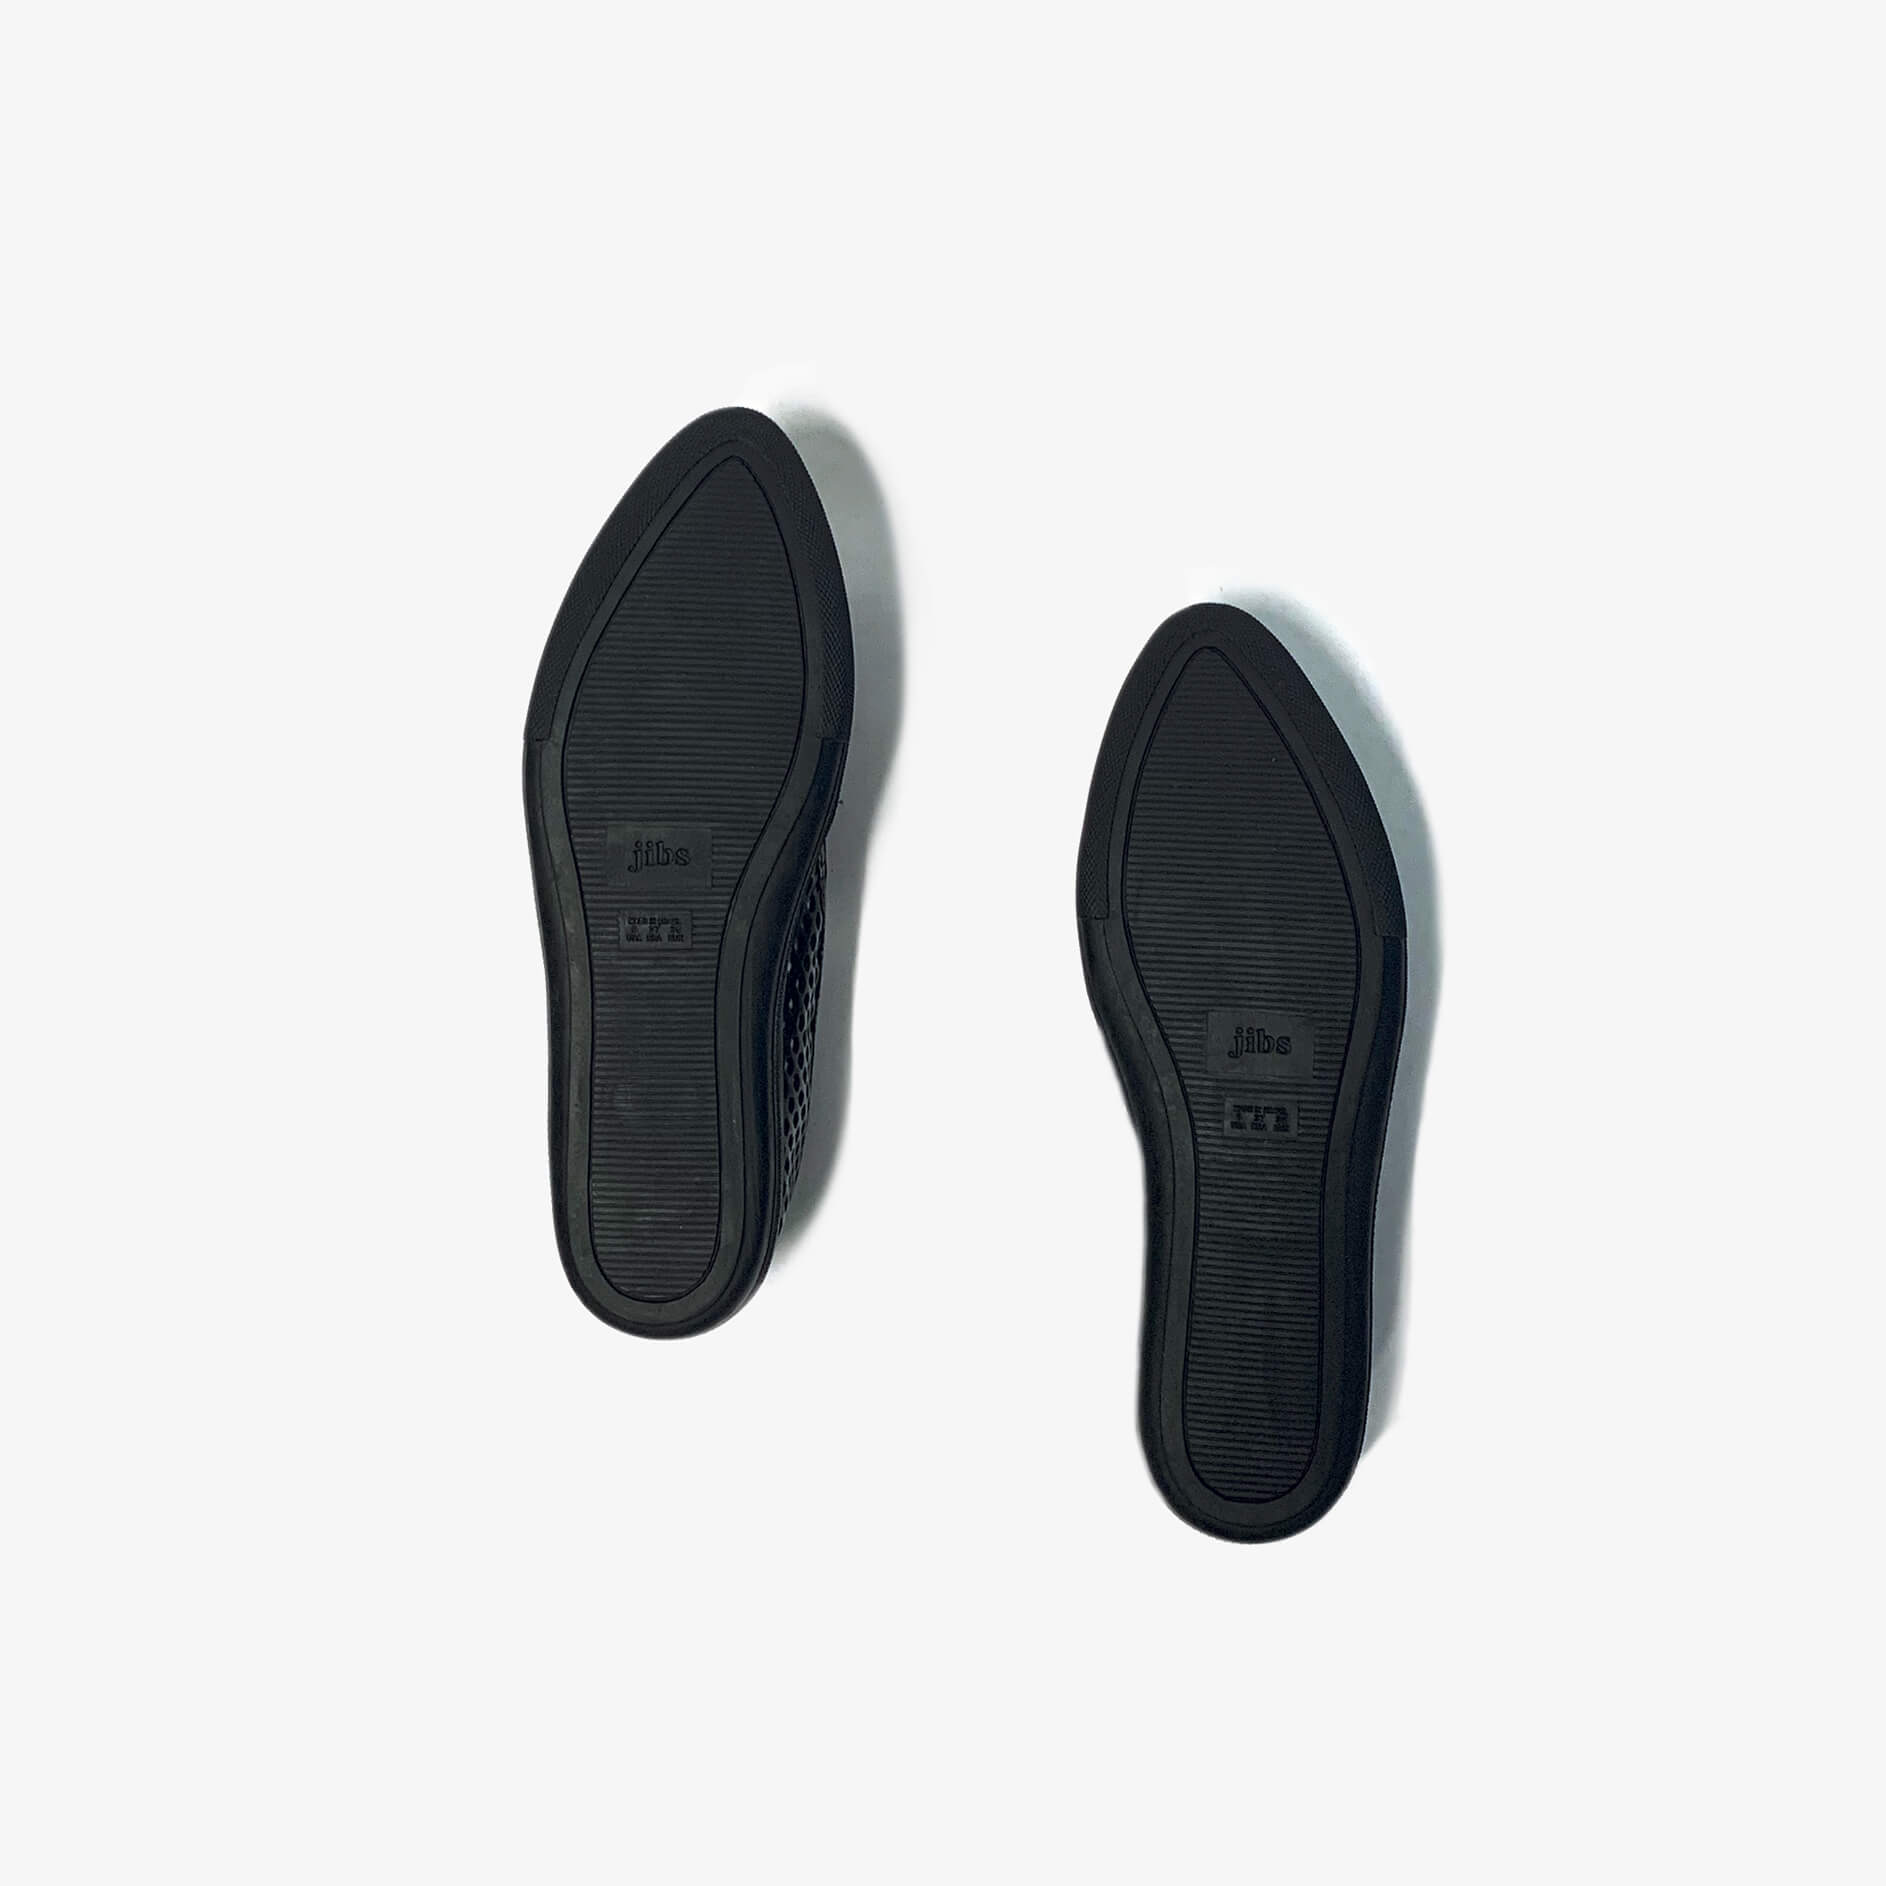 Jibs Slim Jet Black Royale + Onyx Slip On Sneaker Recycled Rubber Sole